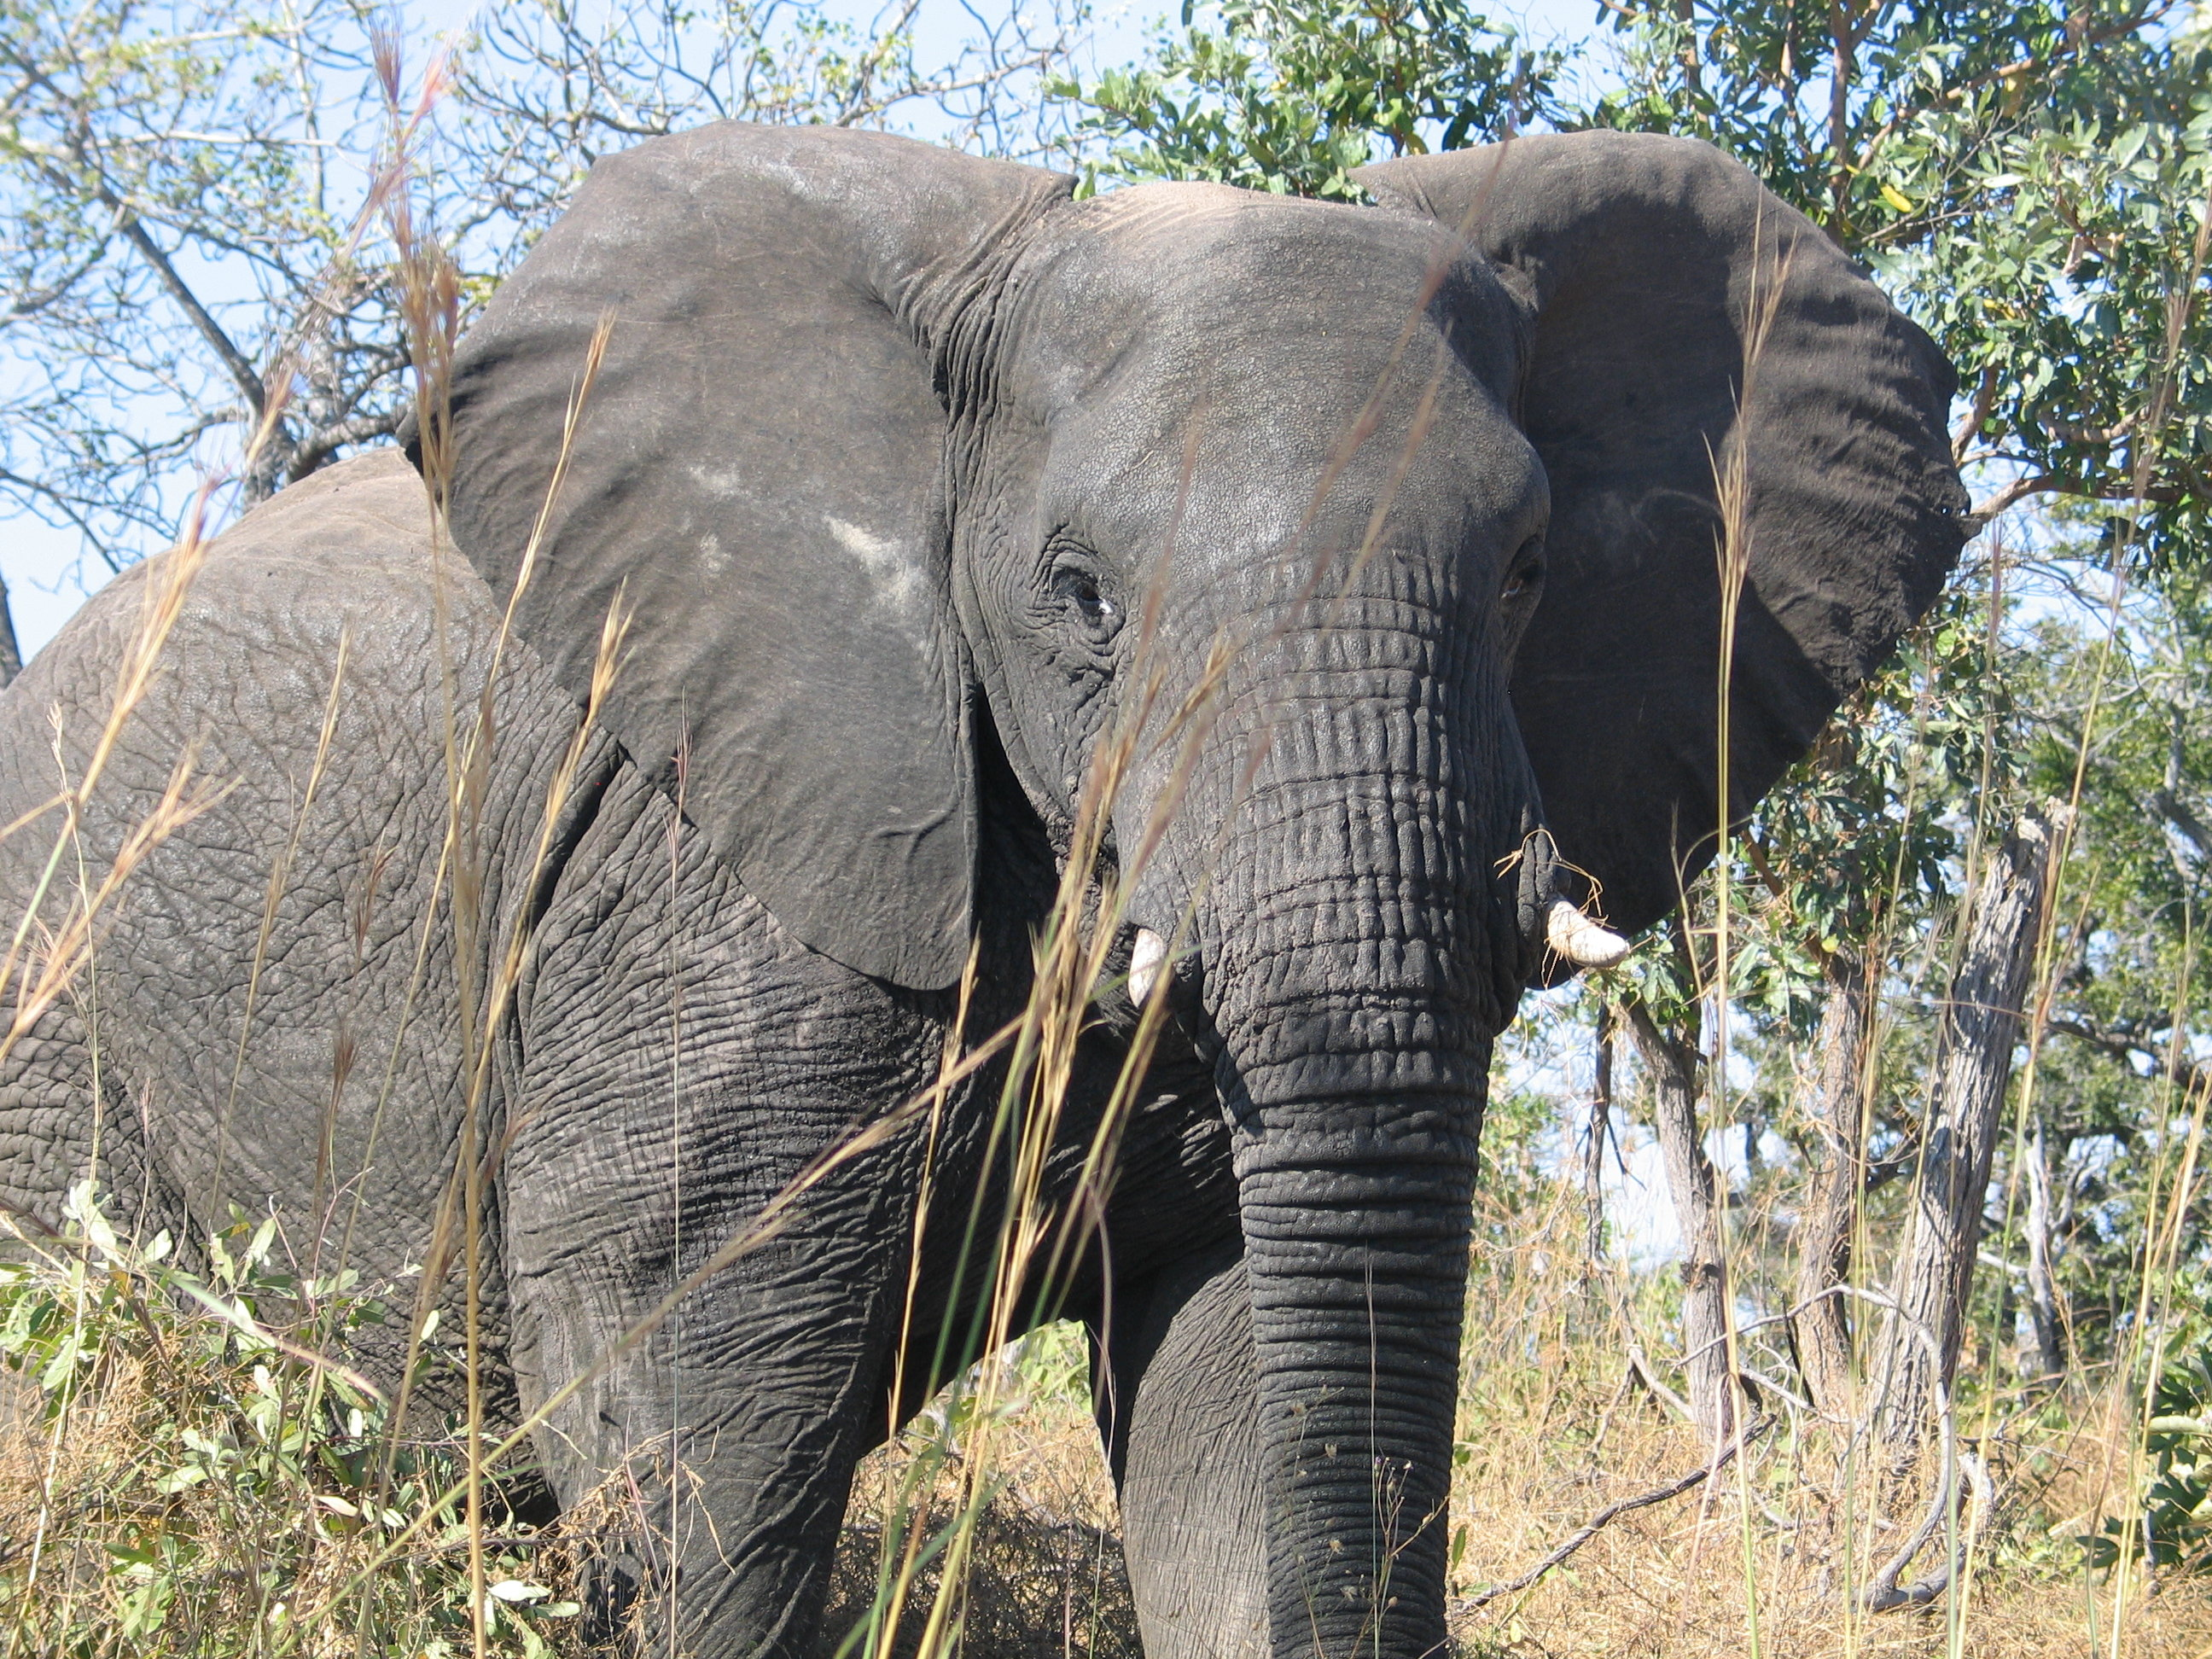 What Elephants Unique Brain Structures Suggest About Their Mental